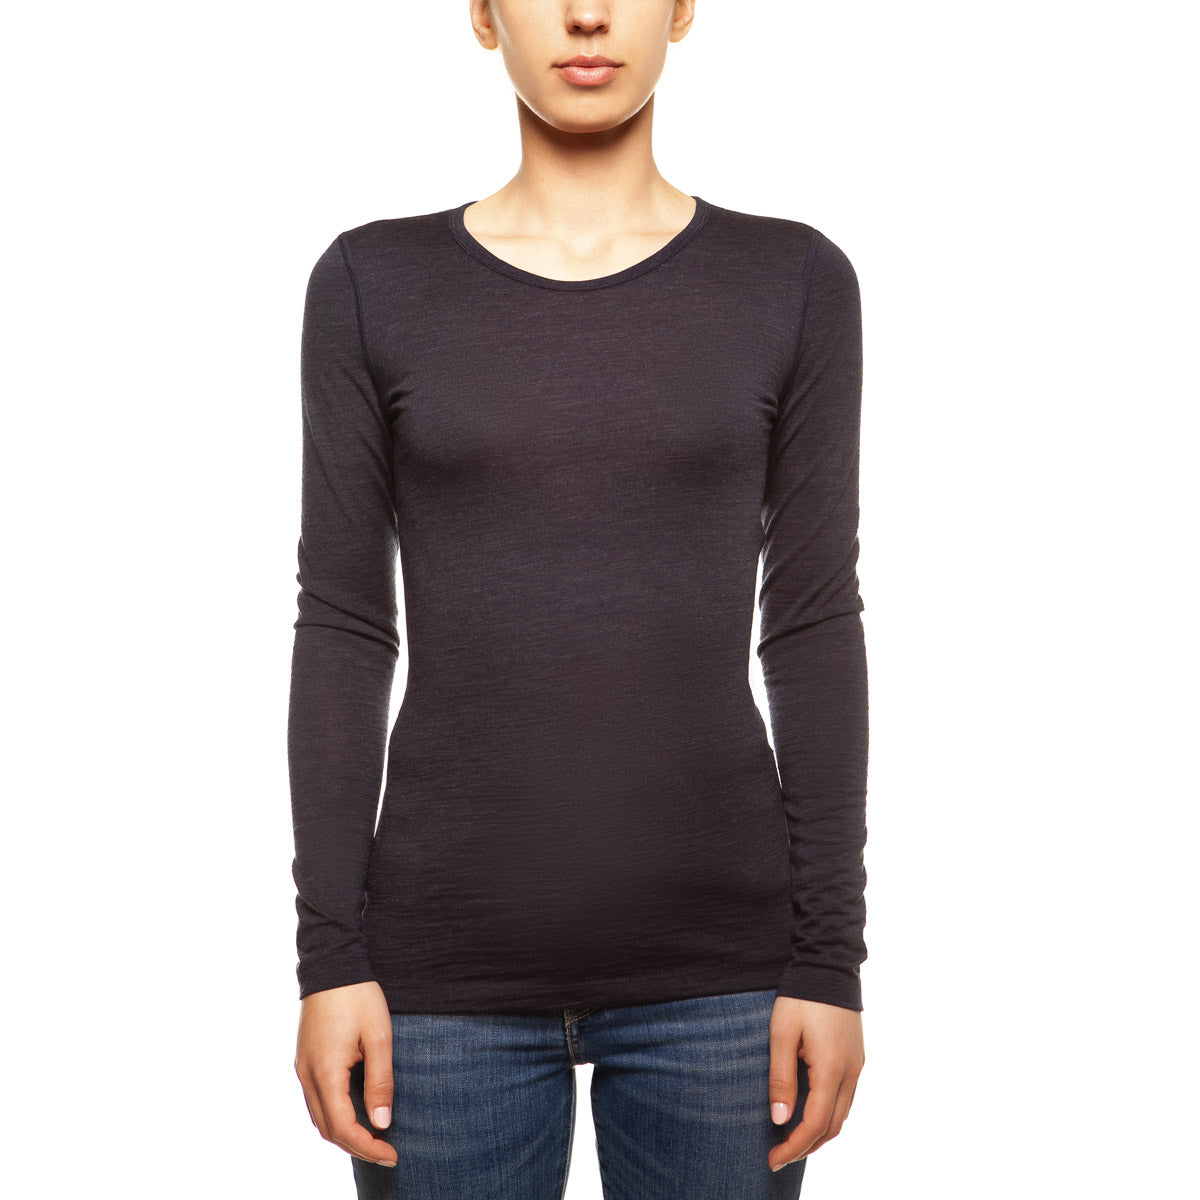 menique Women's Merino 160 Long Sleeve Crew Blue Melange Color